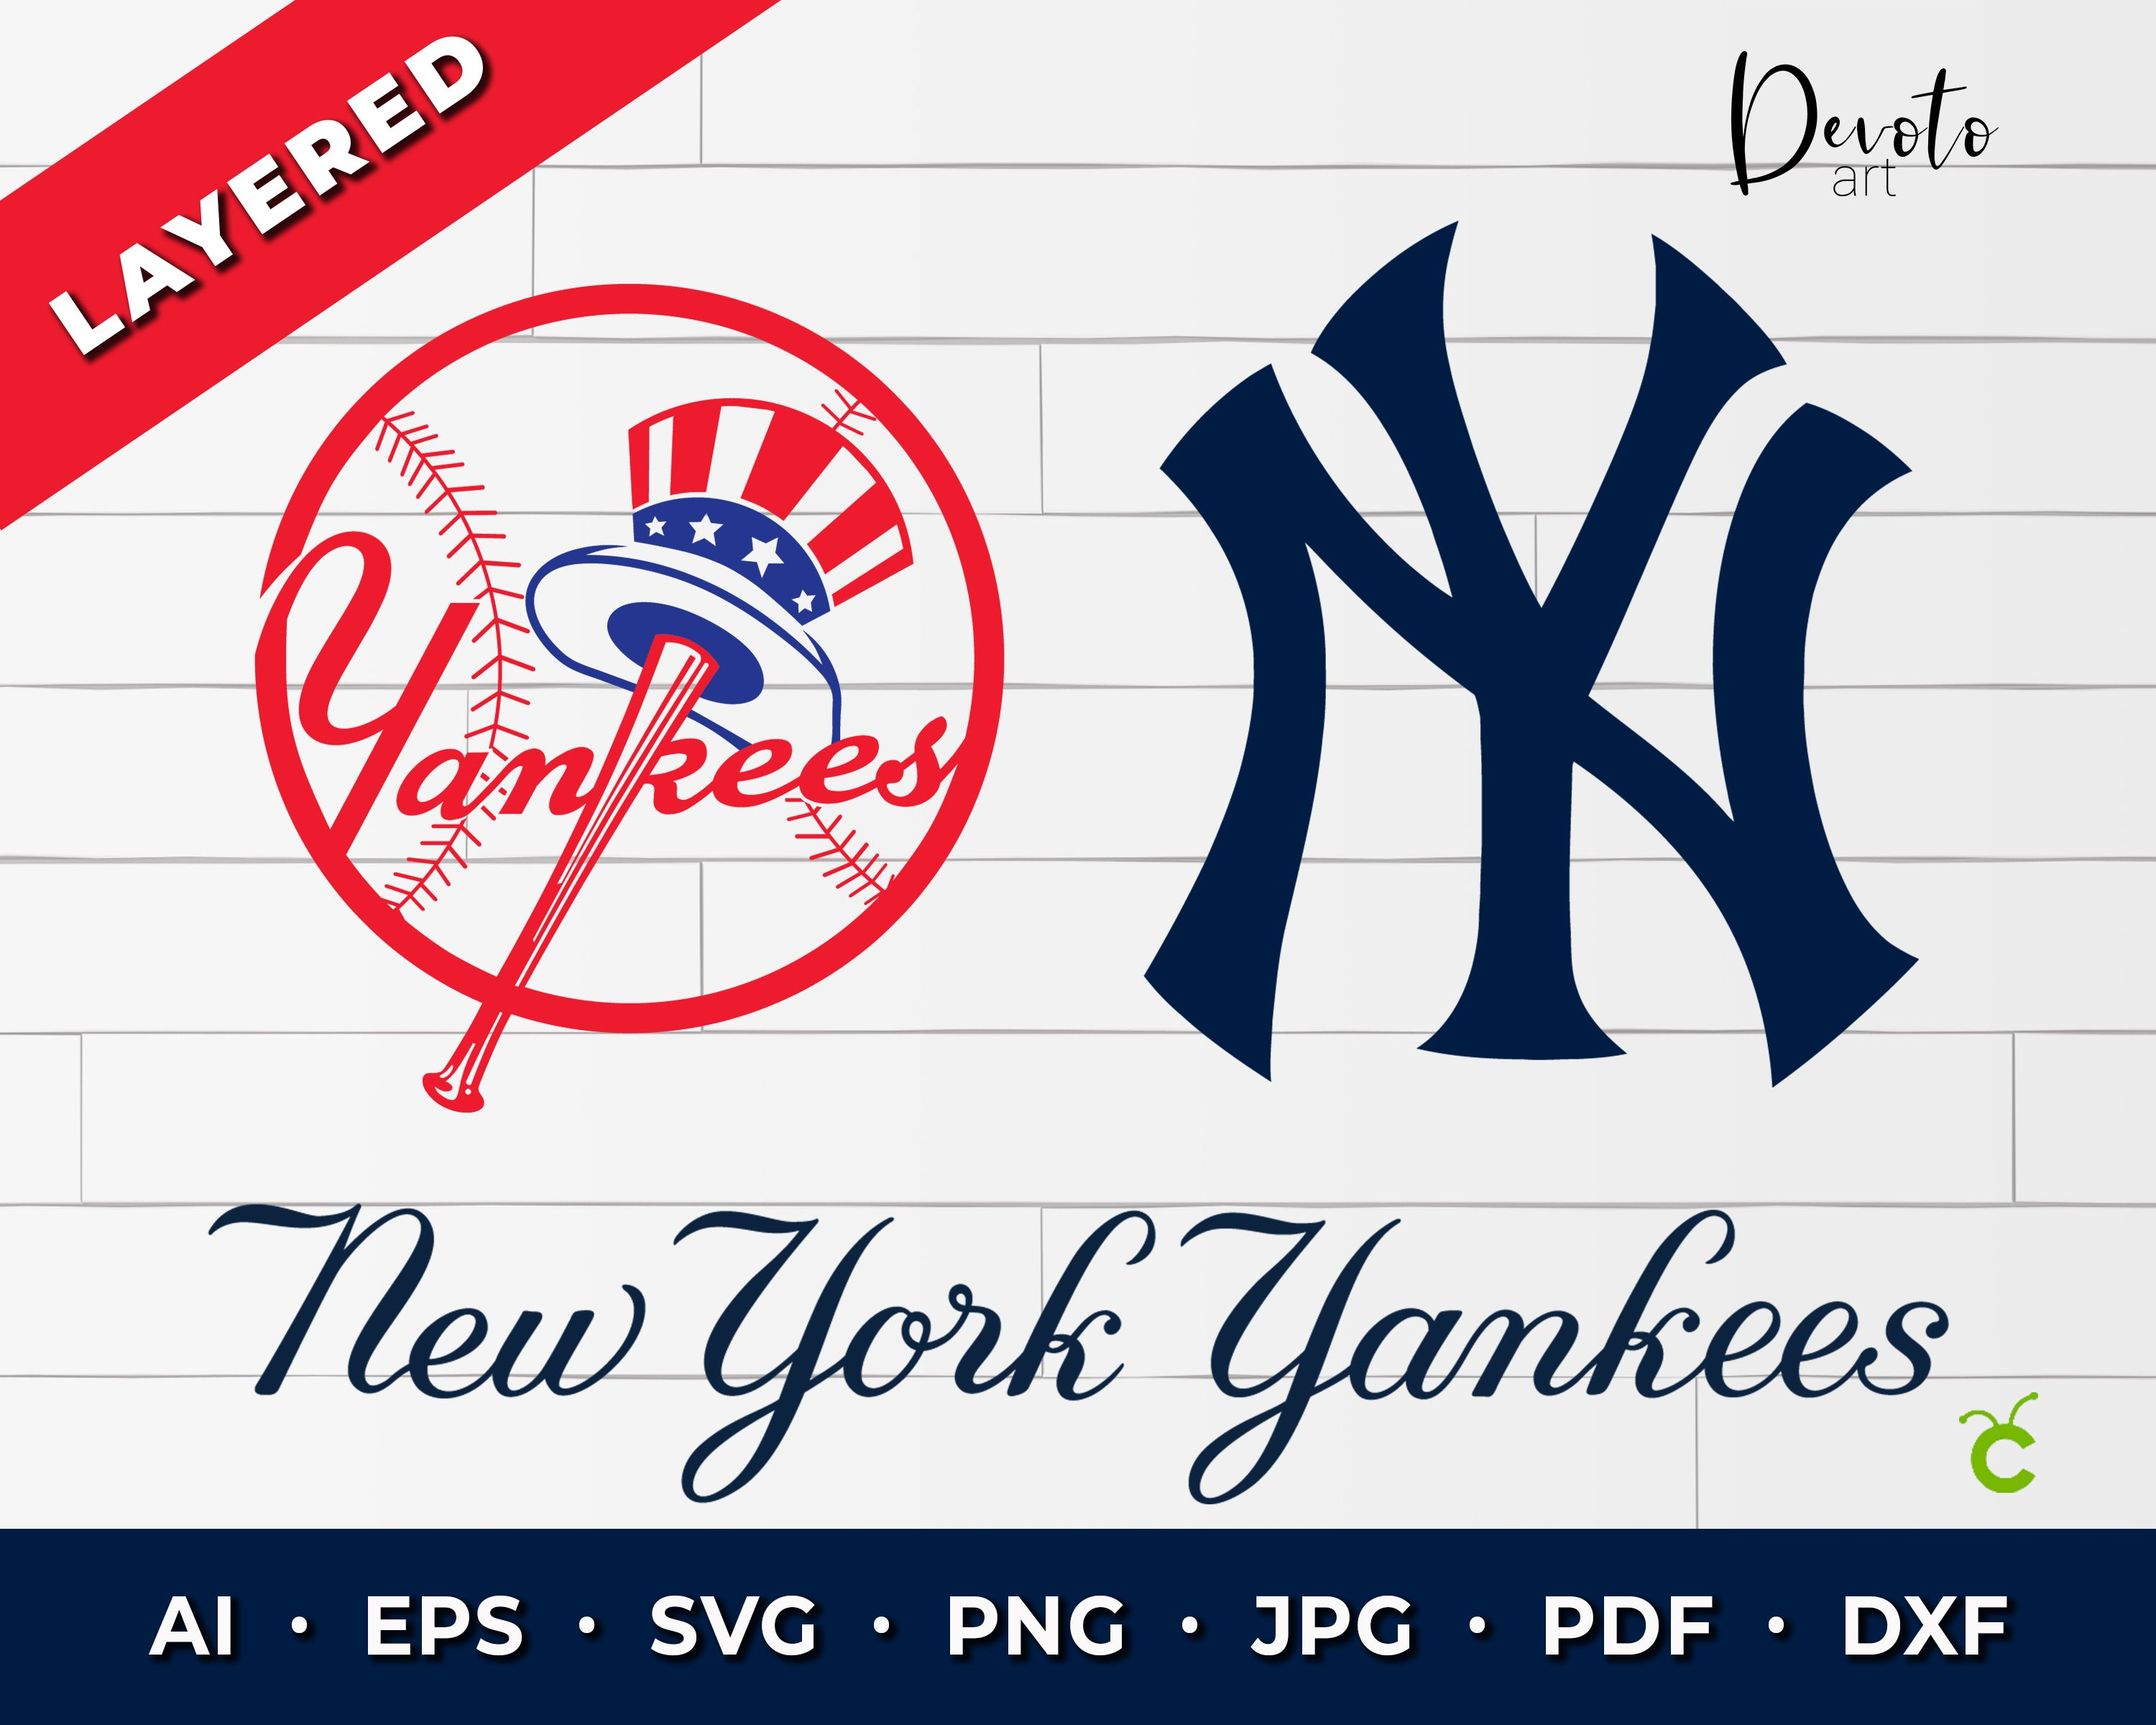 New York Yankees Svg 3 Pack New York Yankees Logo New York Yankees Svg For Cricut New York Yankees Baseball Mlb In 2020 New York Yankees New York Yankees Logo Yankees